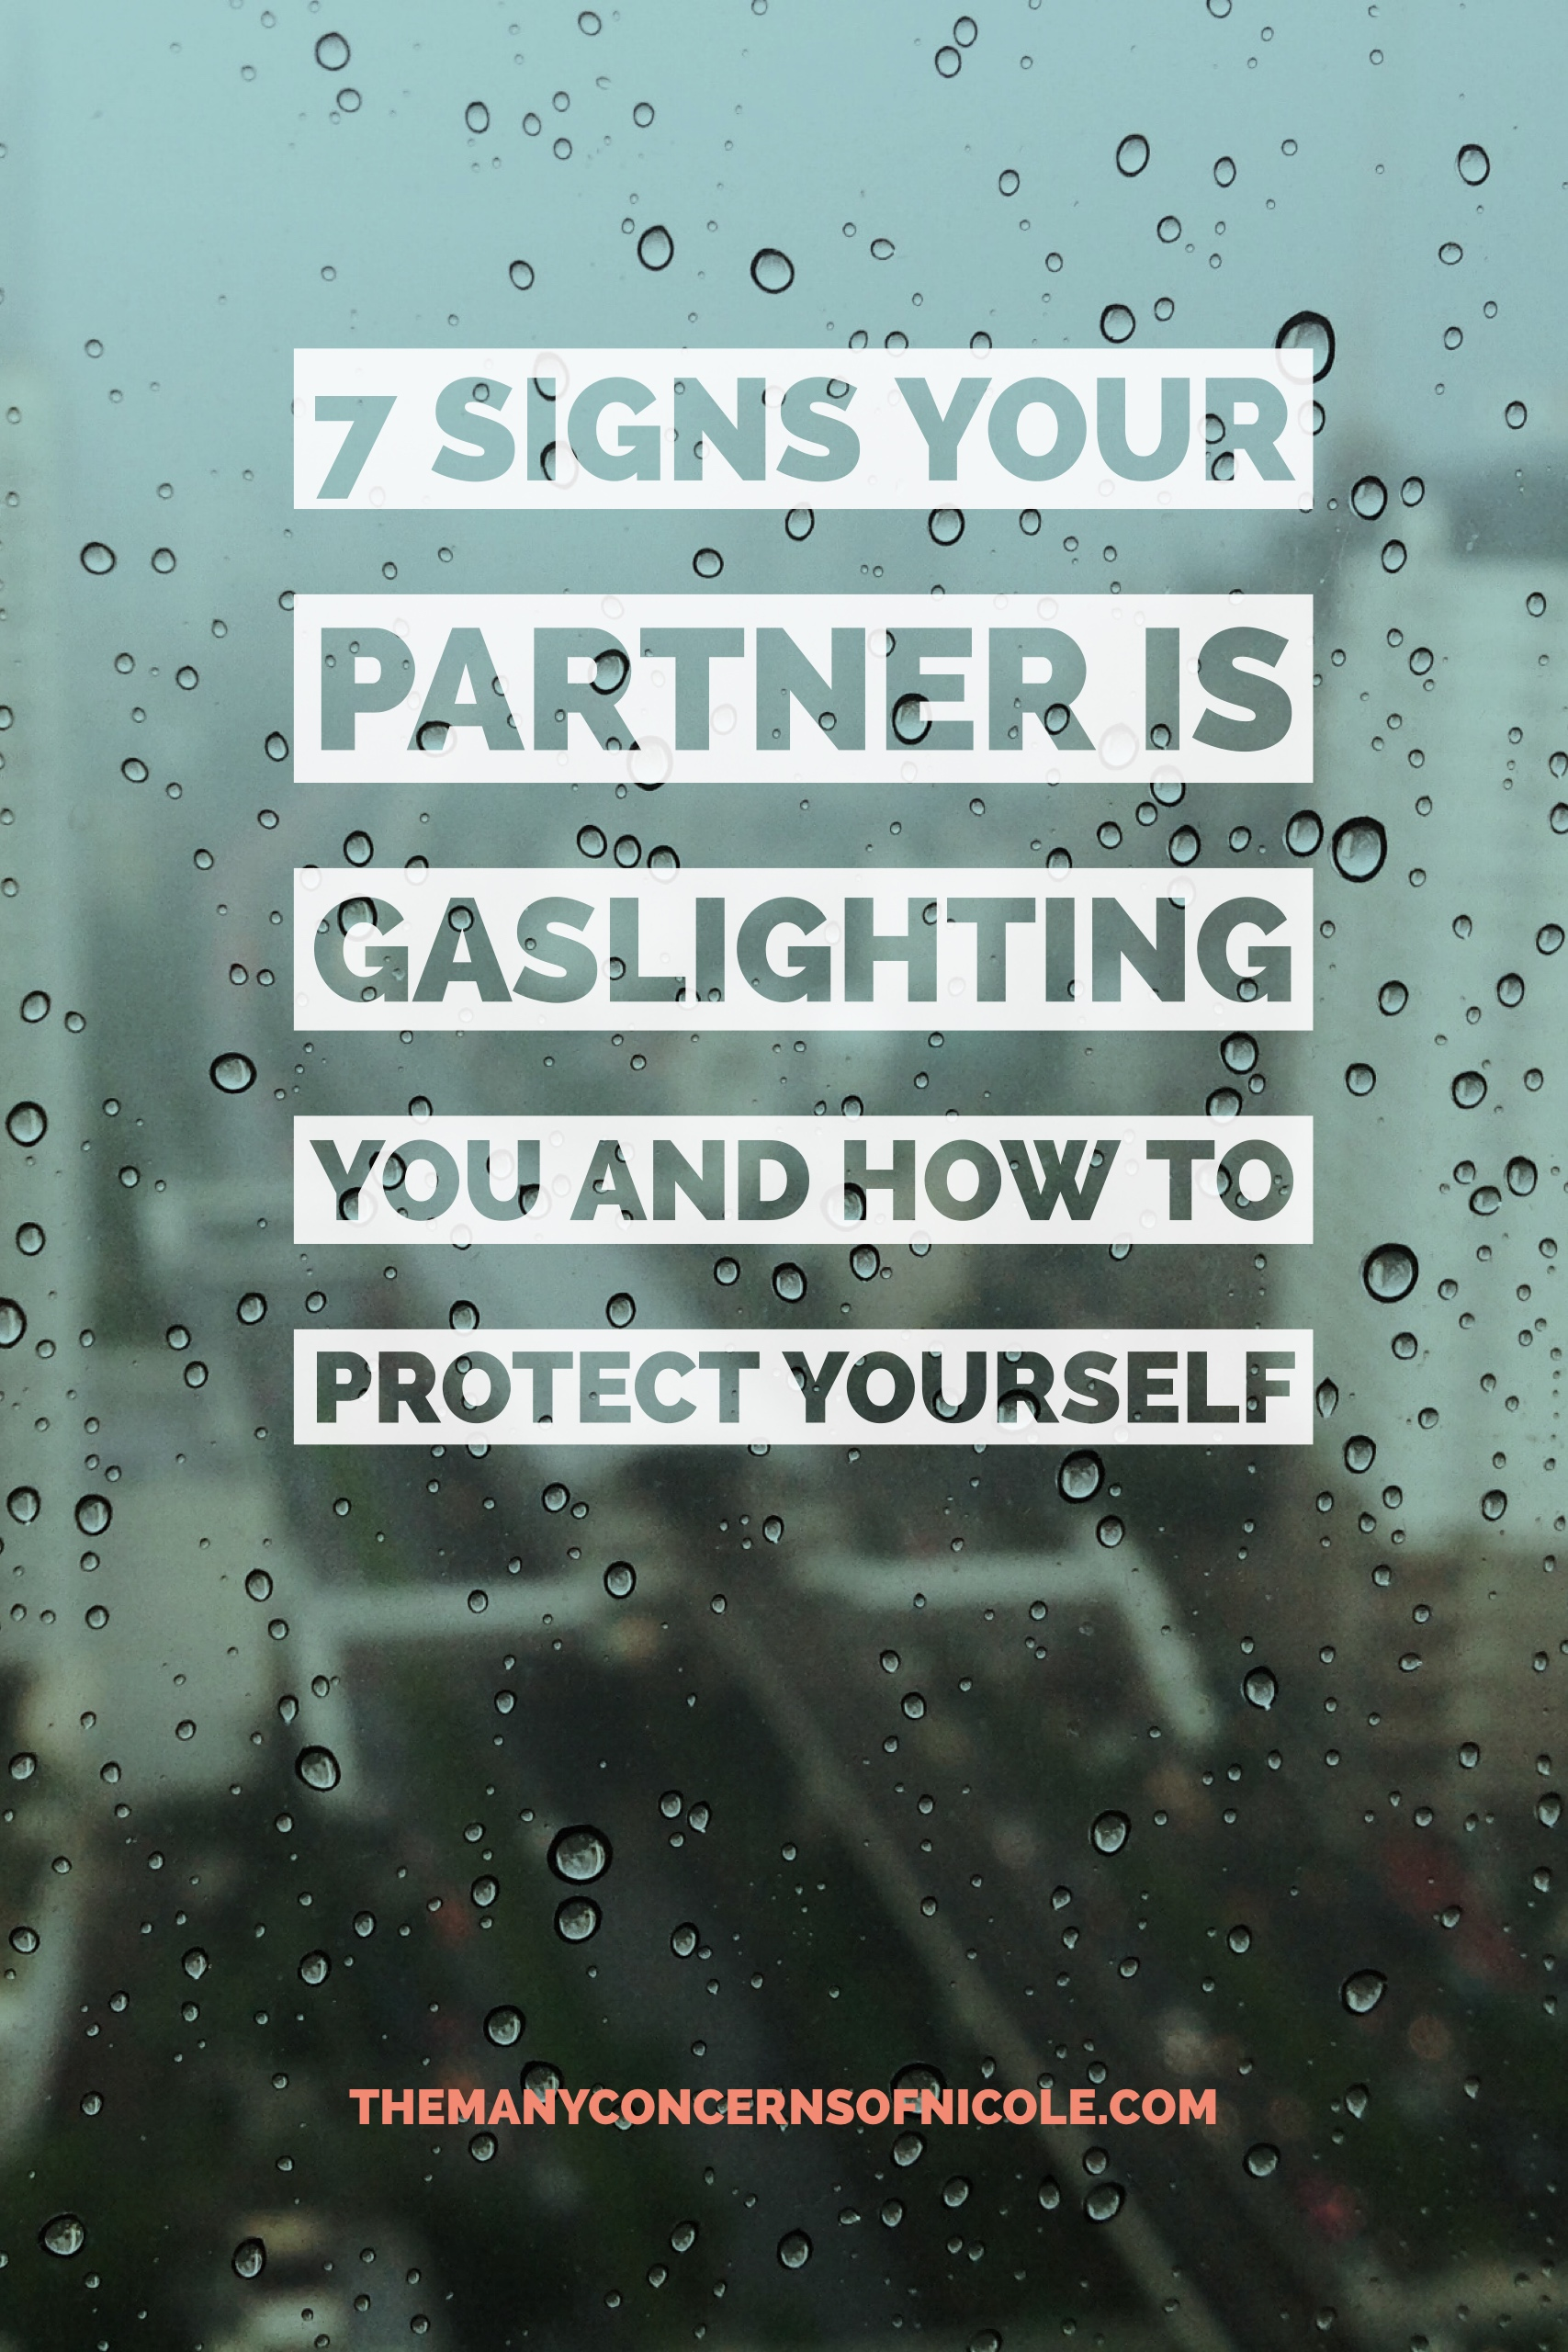 How to defend yourself against gaslighting